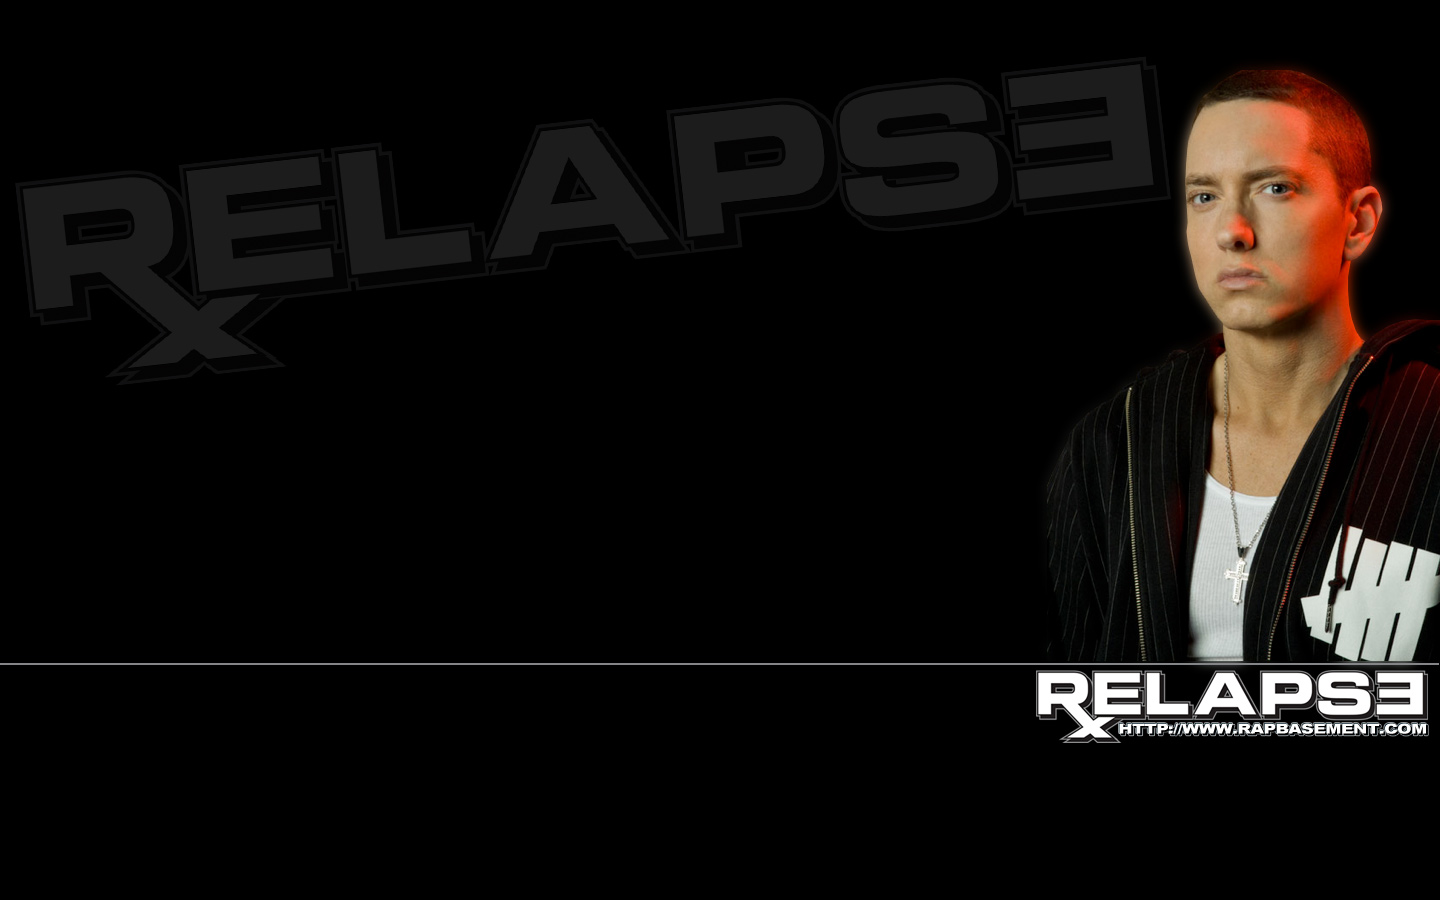 eminem relapse wallpaper 04 Rap Wallpapers 1440x900